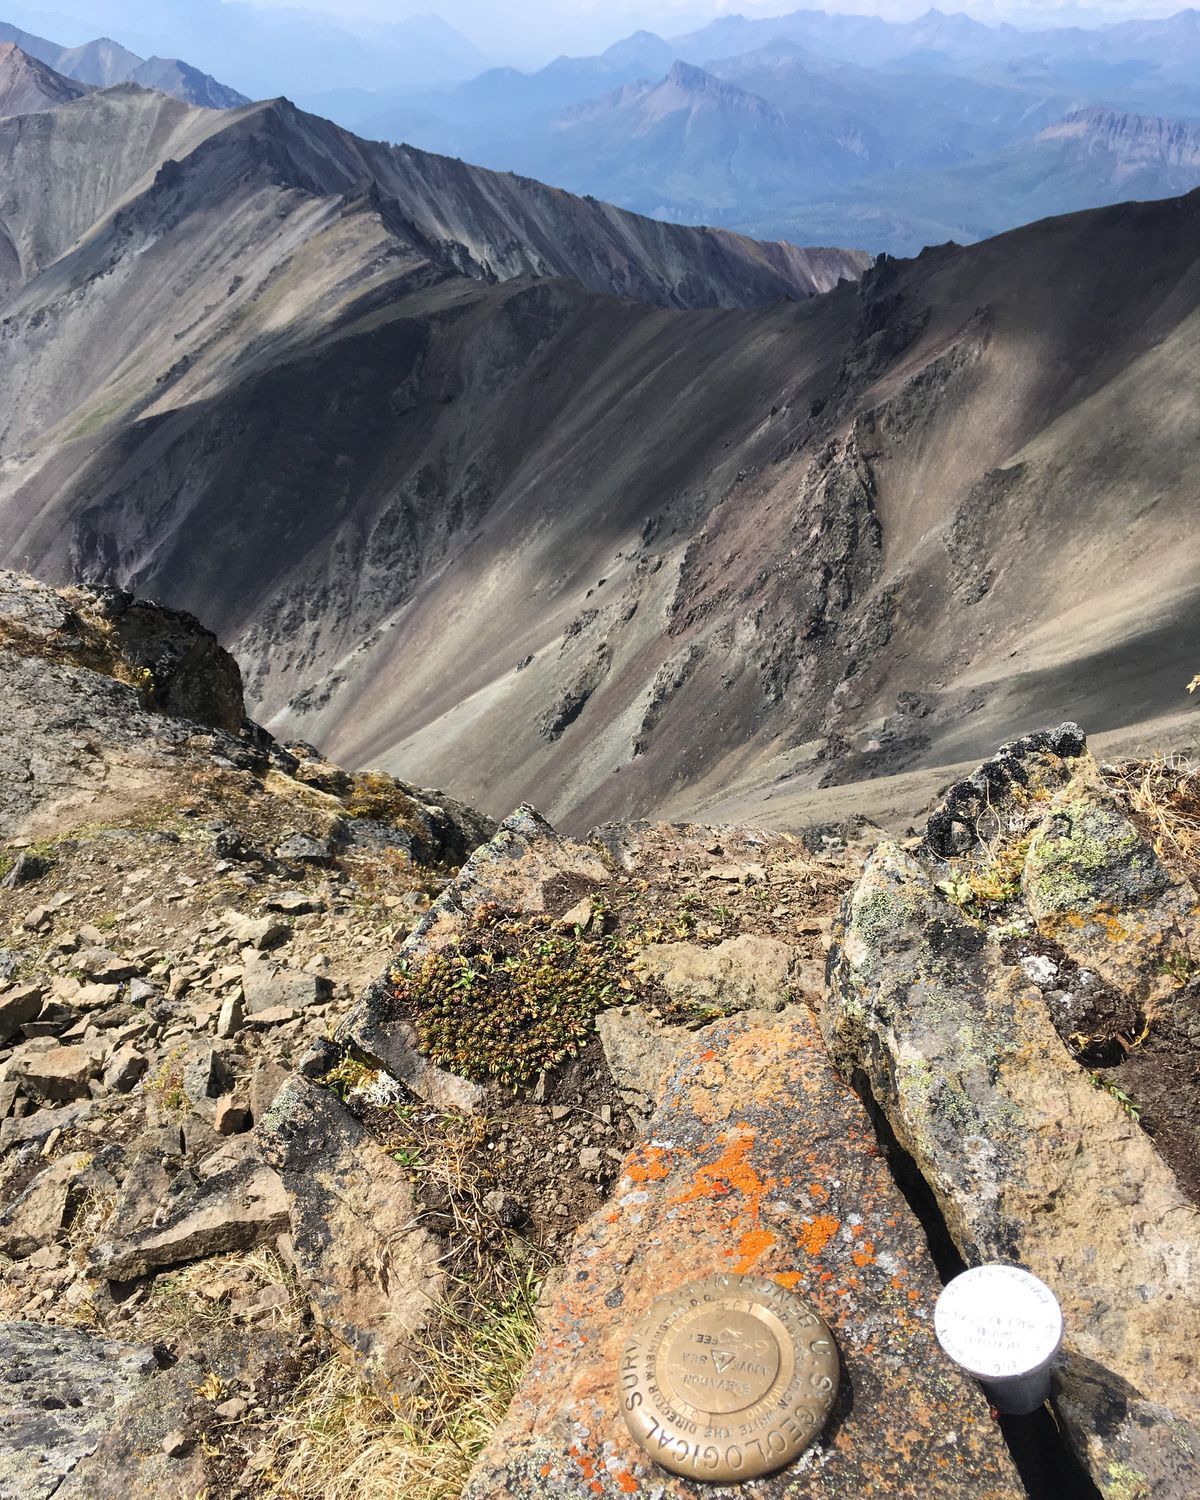 The view from the summit of Gunsight Mountain, summer 2019. (Photo by Alli Harvey)